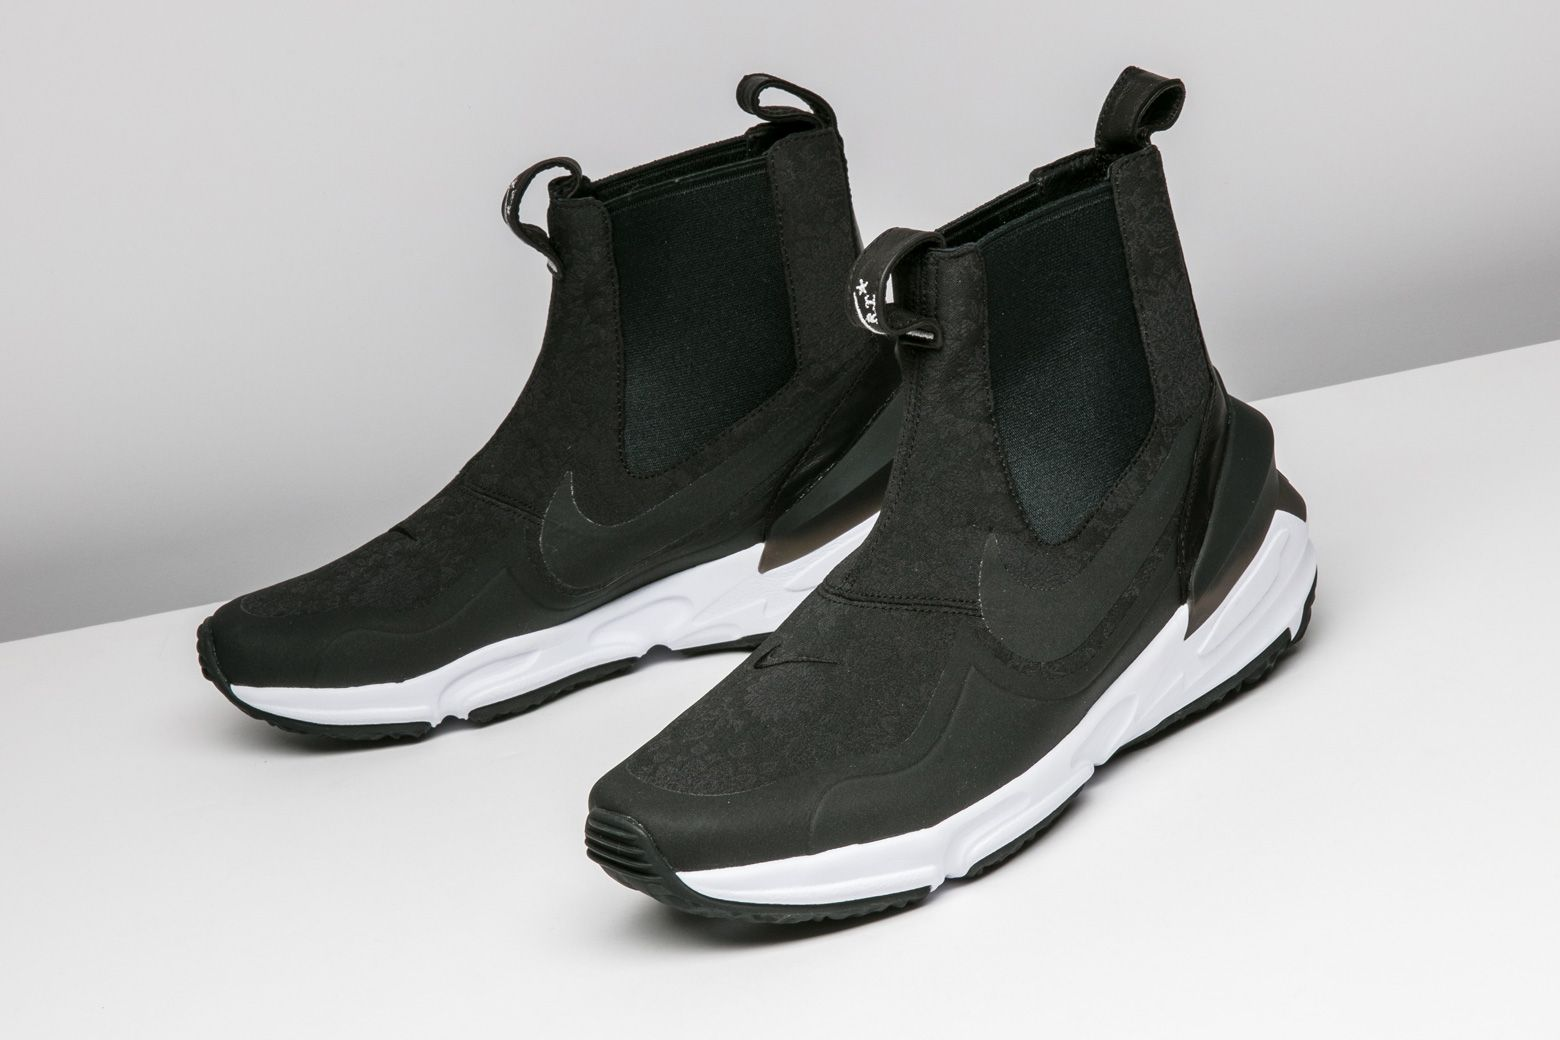 efc8415d090b7 The Riccardo Tisci-designed NikeLab Air Zoom Legend is reminiscent of a  Chelsea Boot